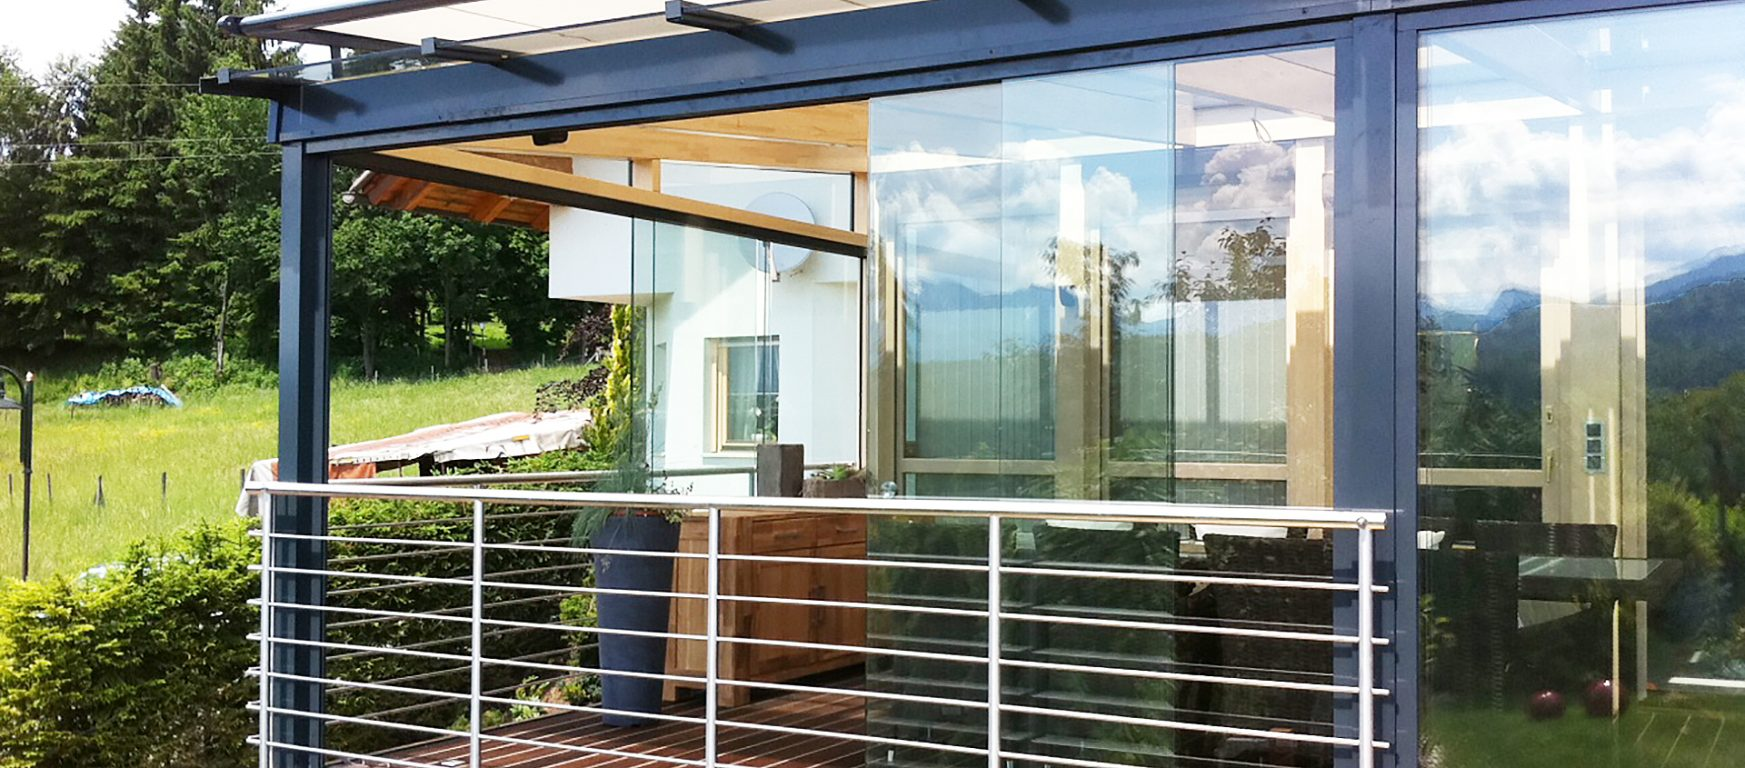 Sunflex SF-20 Sliding Glass Doors